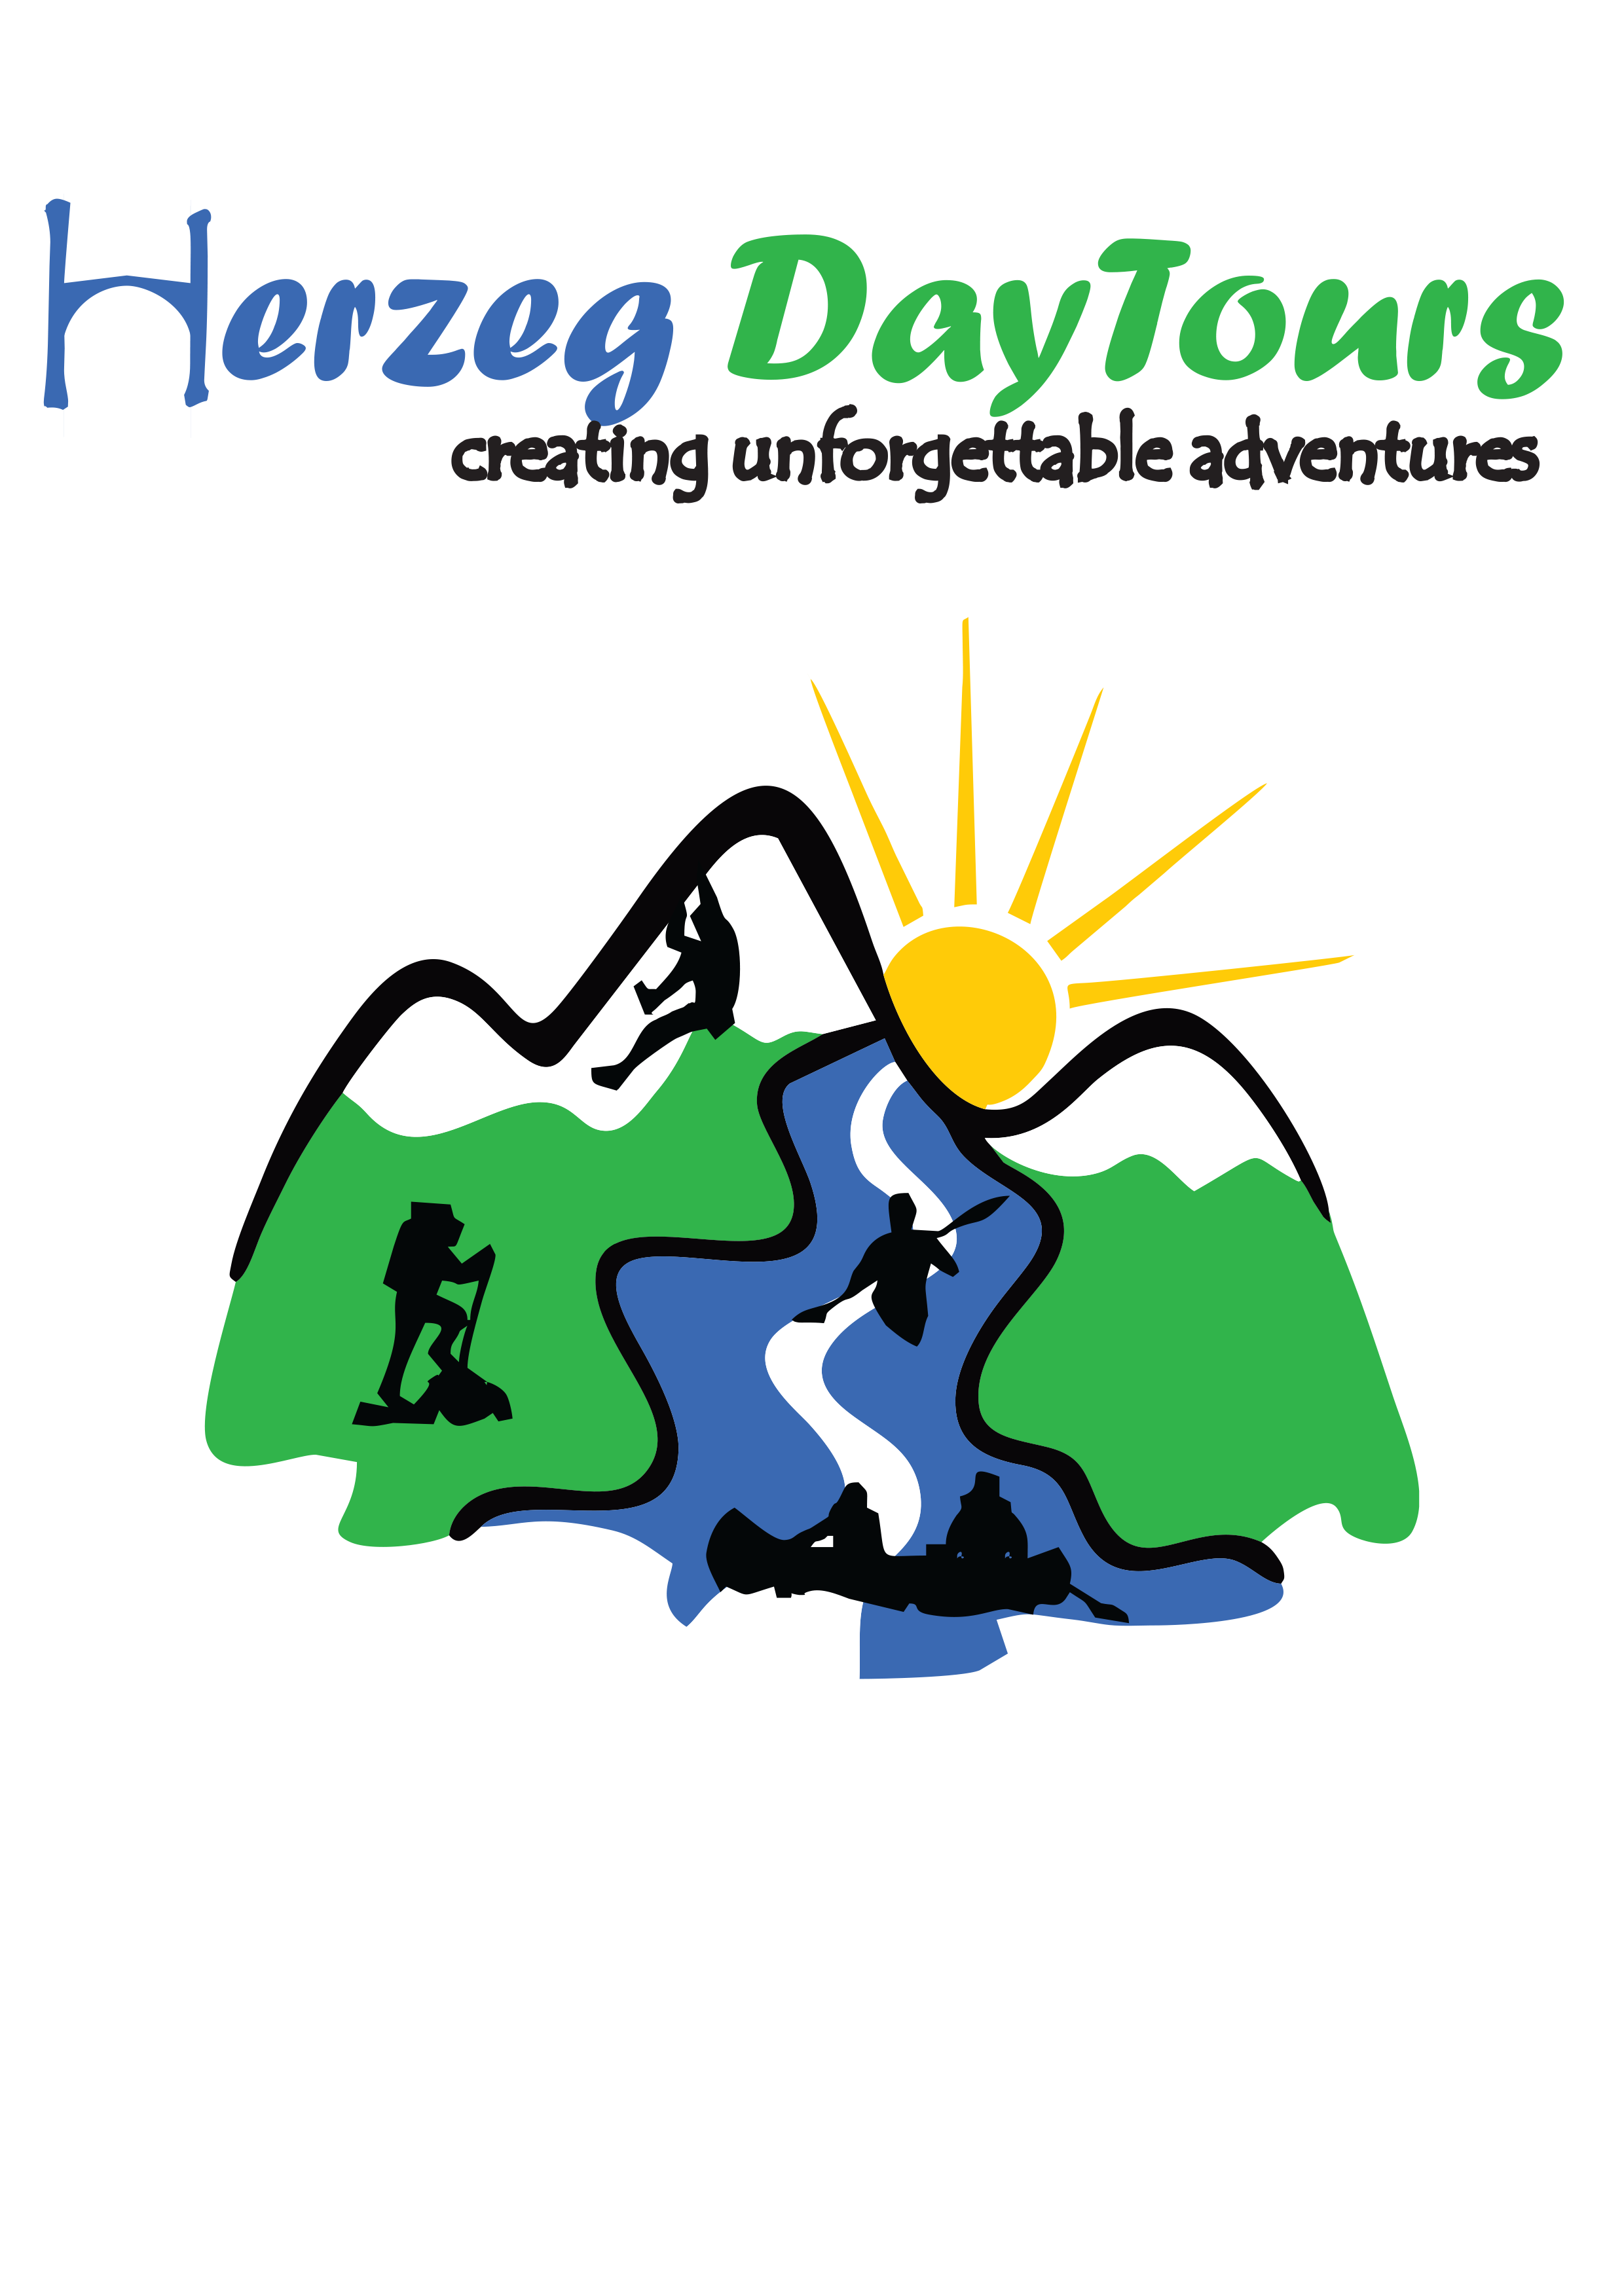 Hike clipart adventure tourism. Homepage herzeg day tours